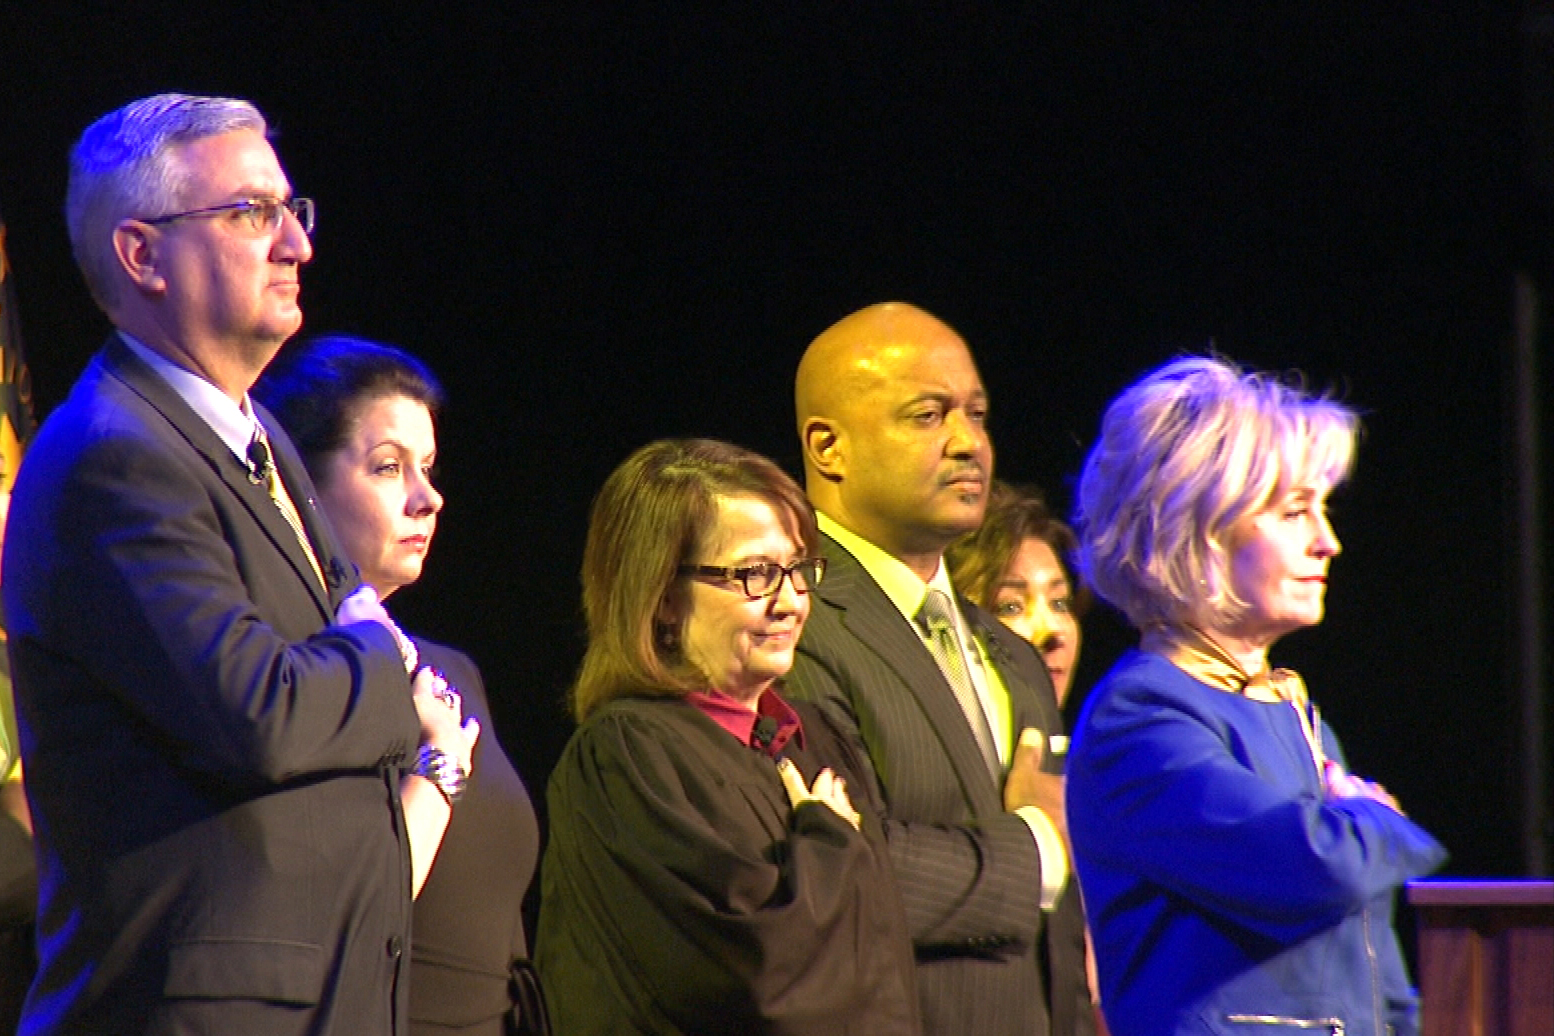 Eric Holcomb (left) and other statewide officials were sworn into office Monday.